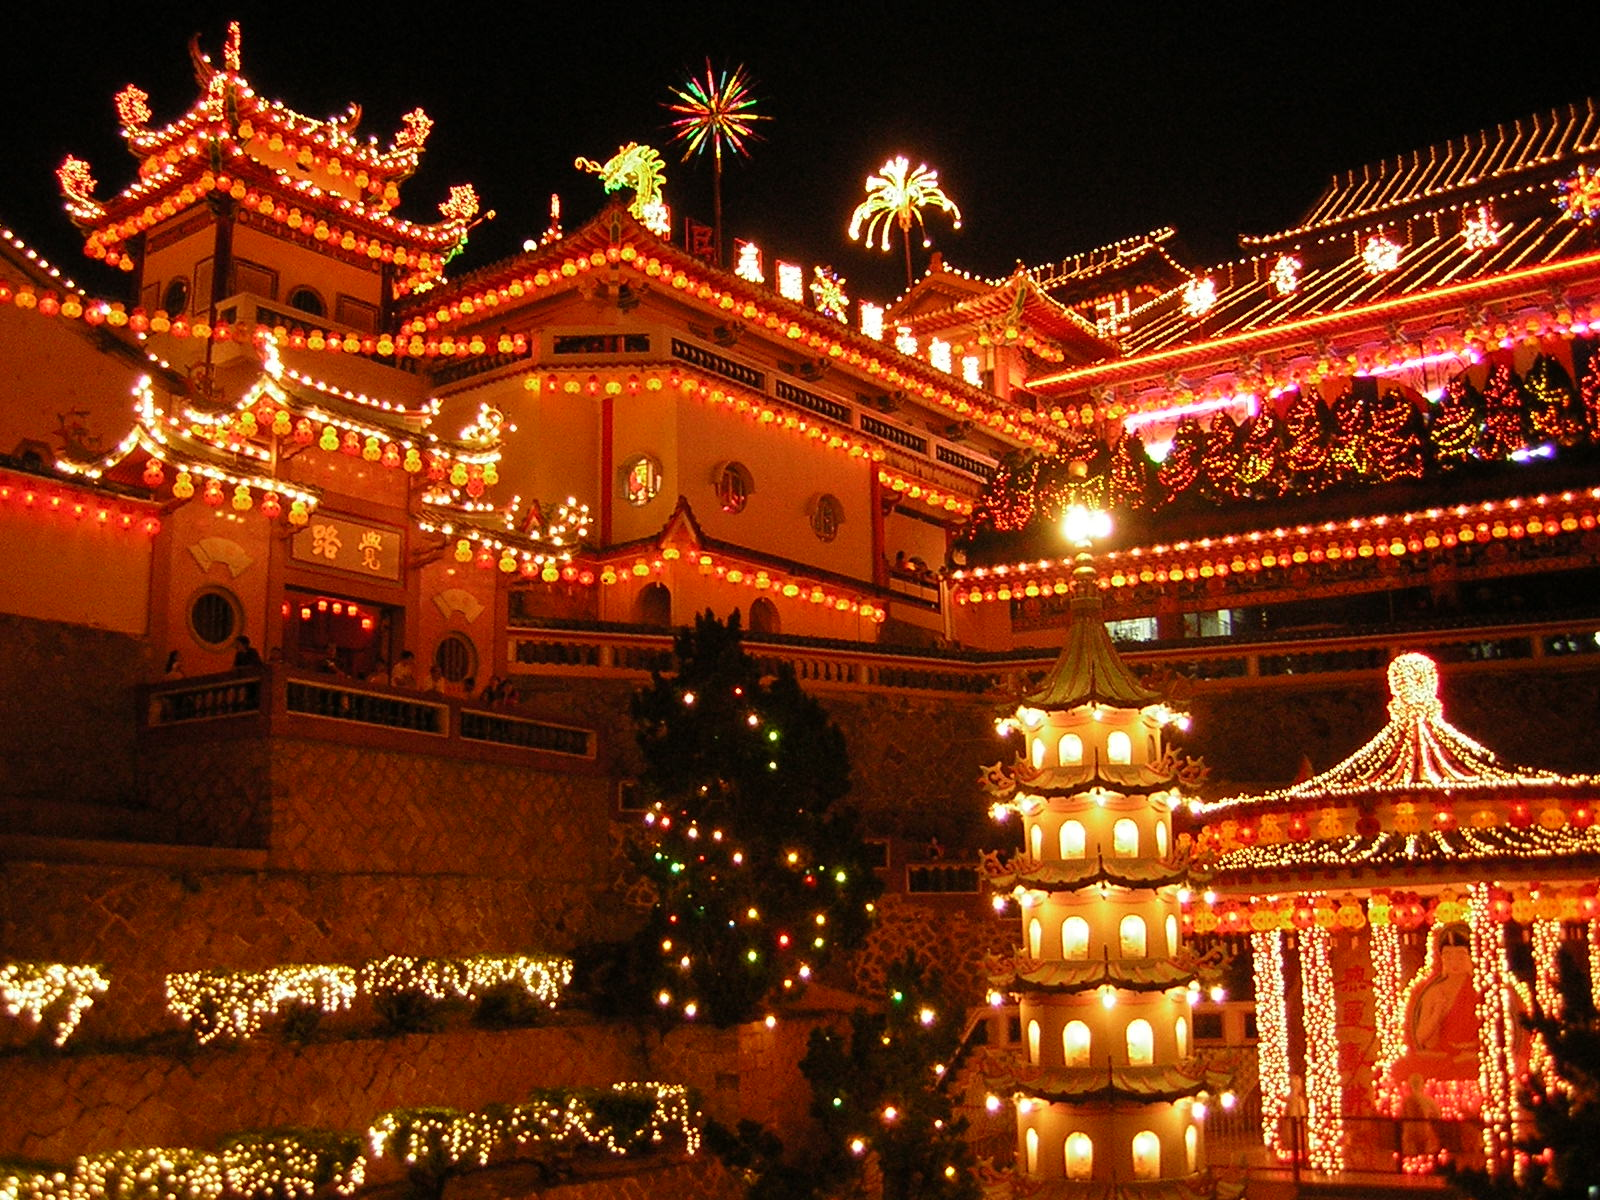 Southeast Asia's largest temple – Kek Lok Si near George Town in Penang, Malaysia – illuminated in preparation for the Lunar New Year. Photo taken on February 20, 2005 (Year of the Rooster).